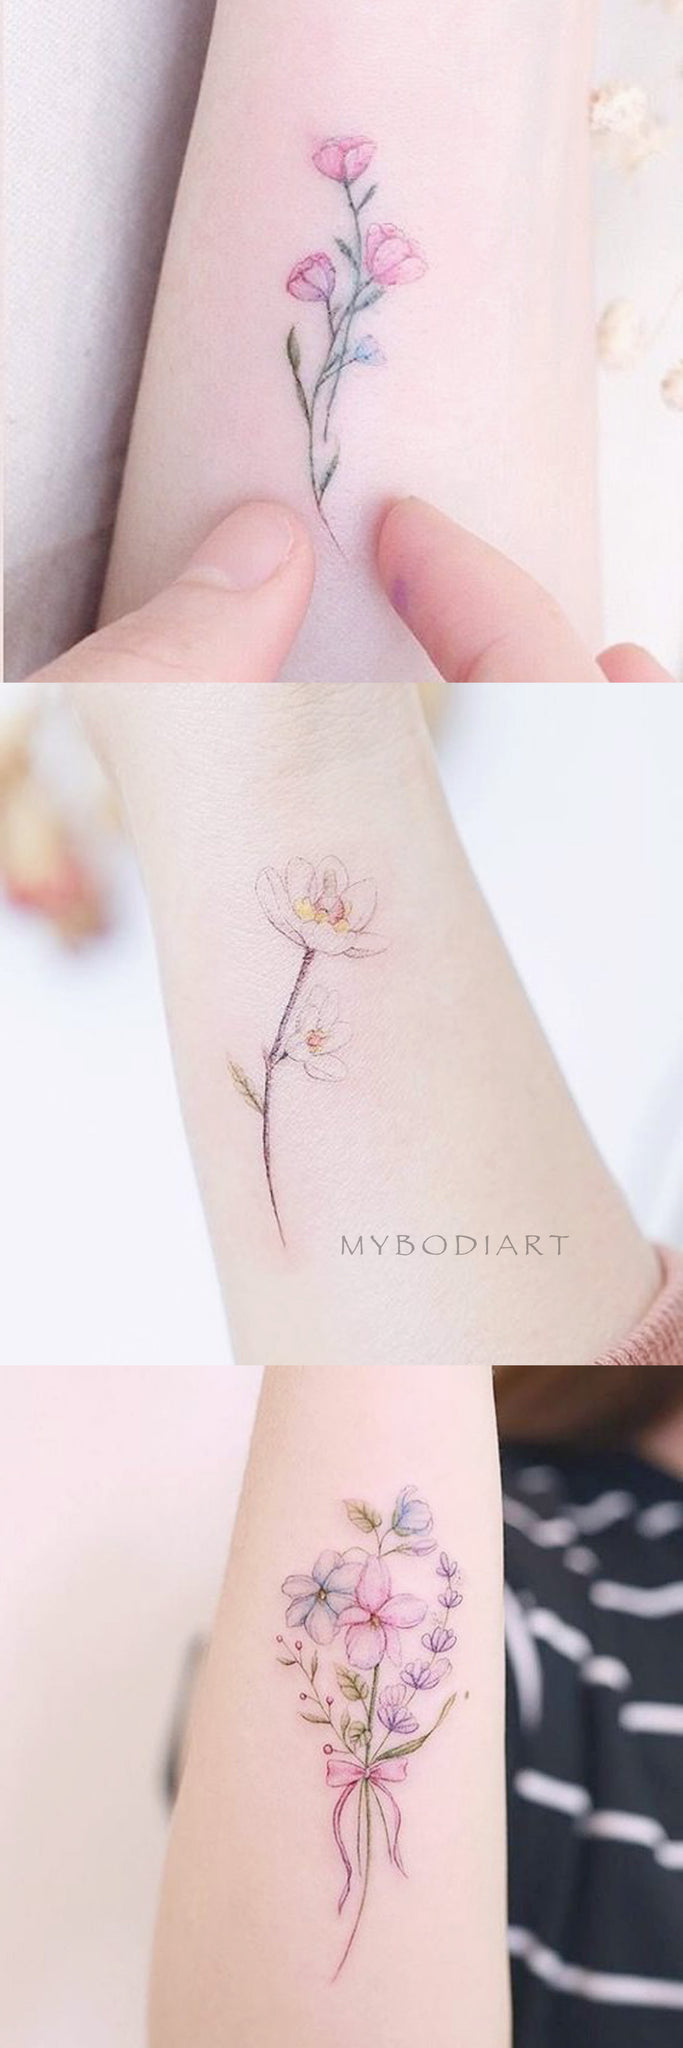 Delicate Cute Watercolor Floral Flower Rose Arm Tattoo Ideas for Women -  Ideas lindas de tatuaje de brazo de flor de acuarela para mujeres - www.MyBodiArt.com